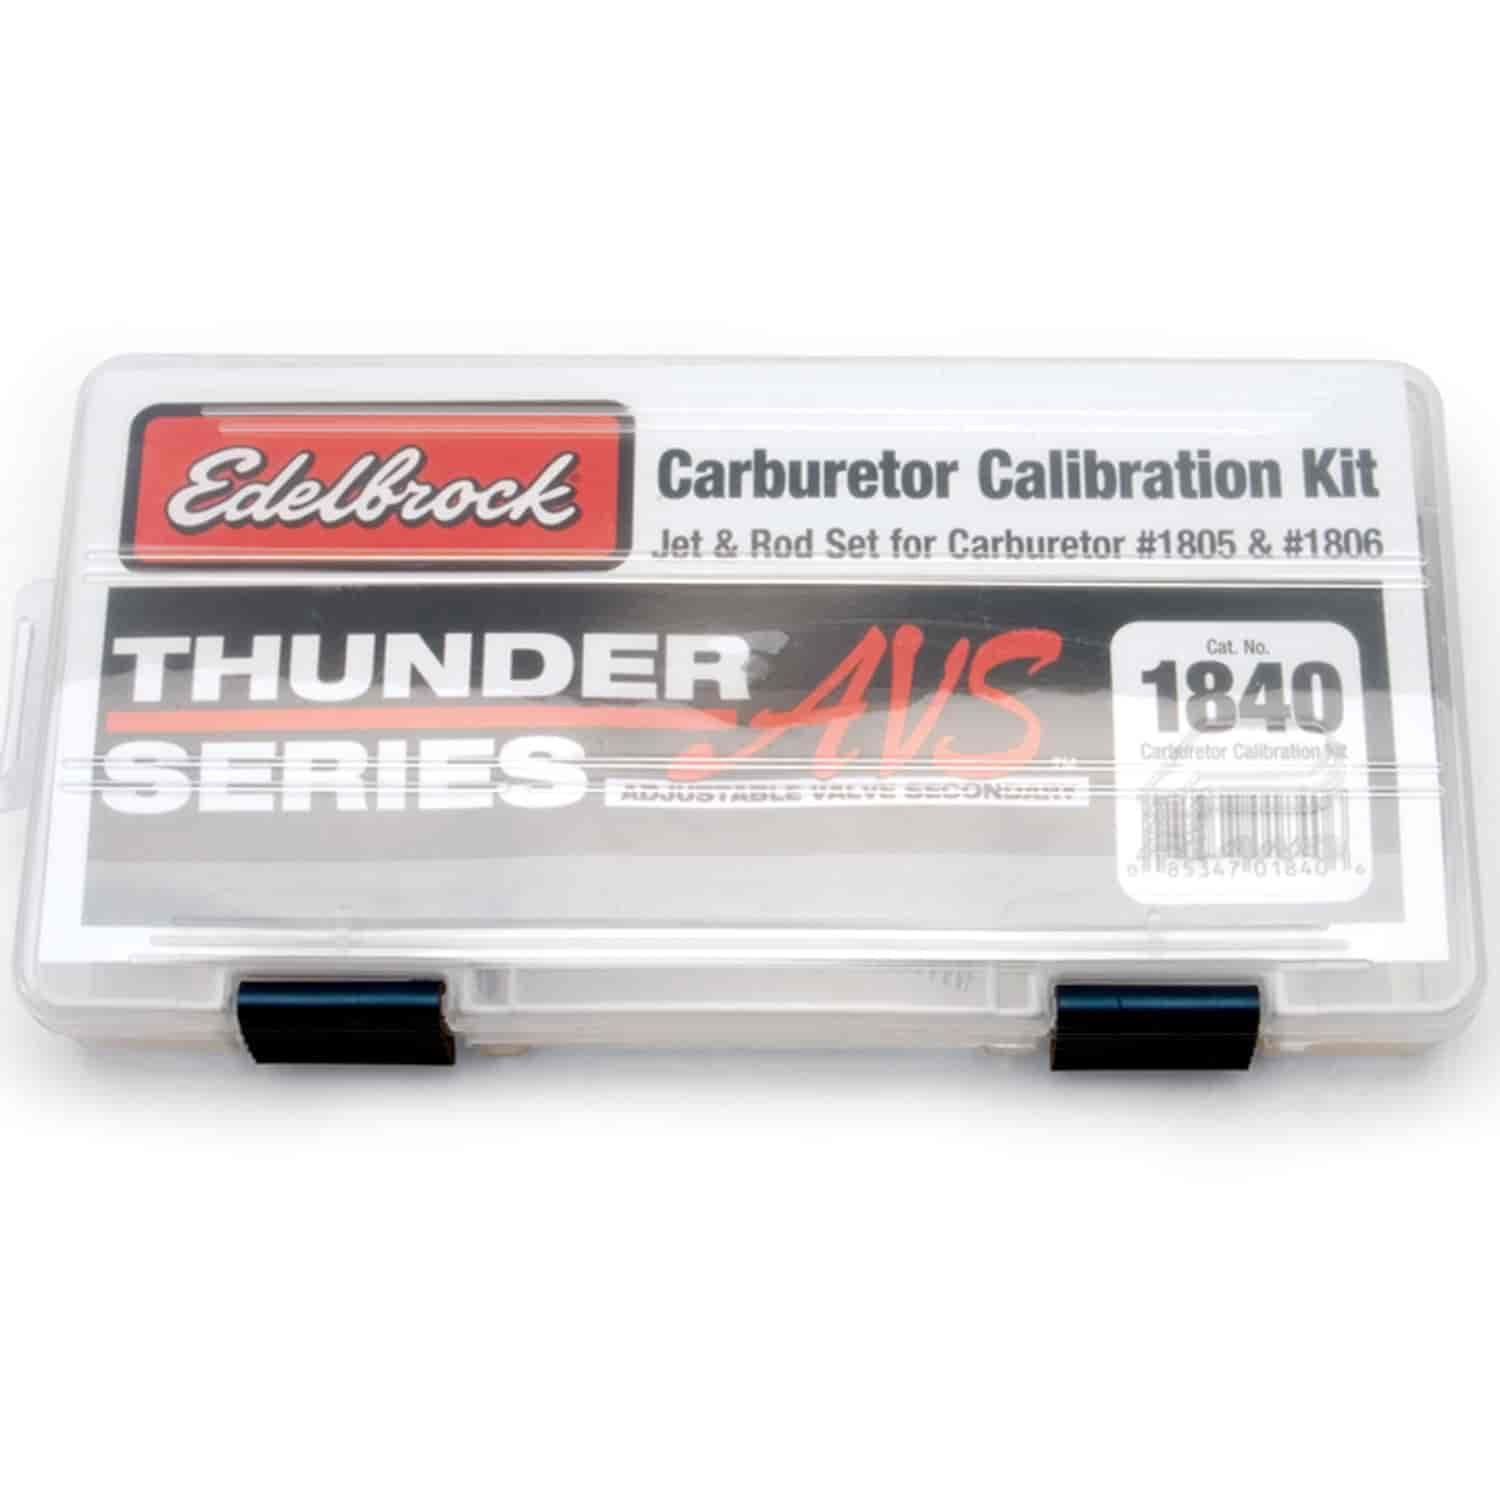 Edelbrock 1840 - Edelbrock Carburetor Calibration Kits